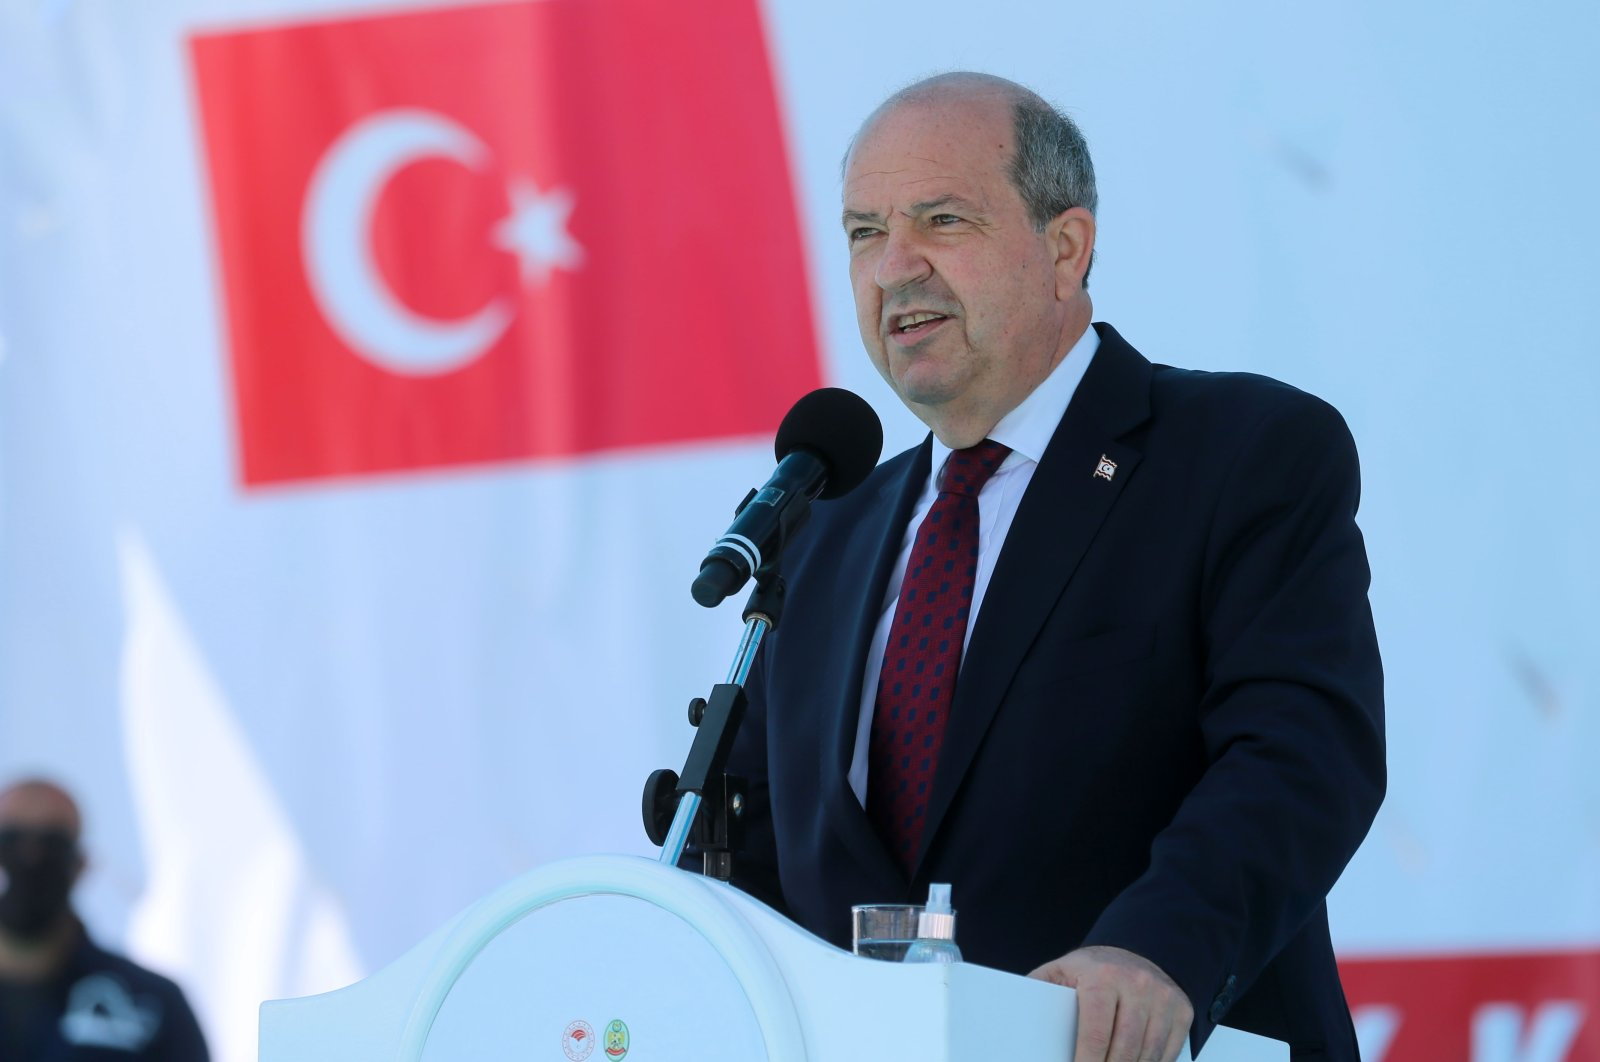 Turkish Cypriot President Ersin Tatar speaks at an event in Turkish Republic of Northern Cyprus' (TRNC) Güzelyurt, May 22, 2021 (AA Photo)